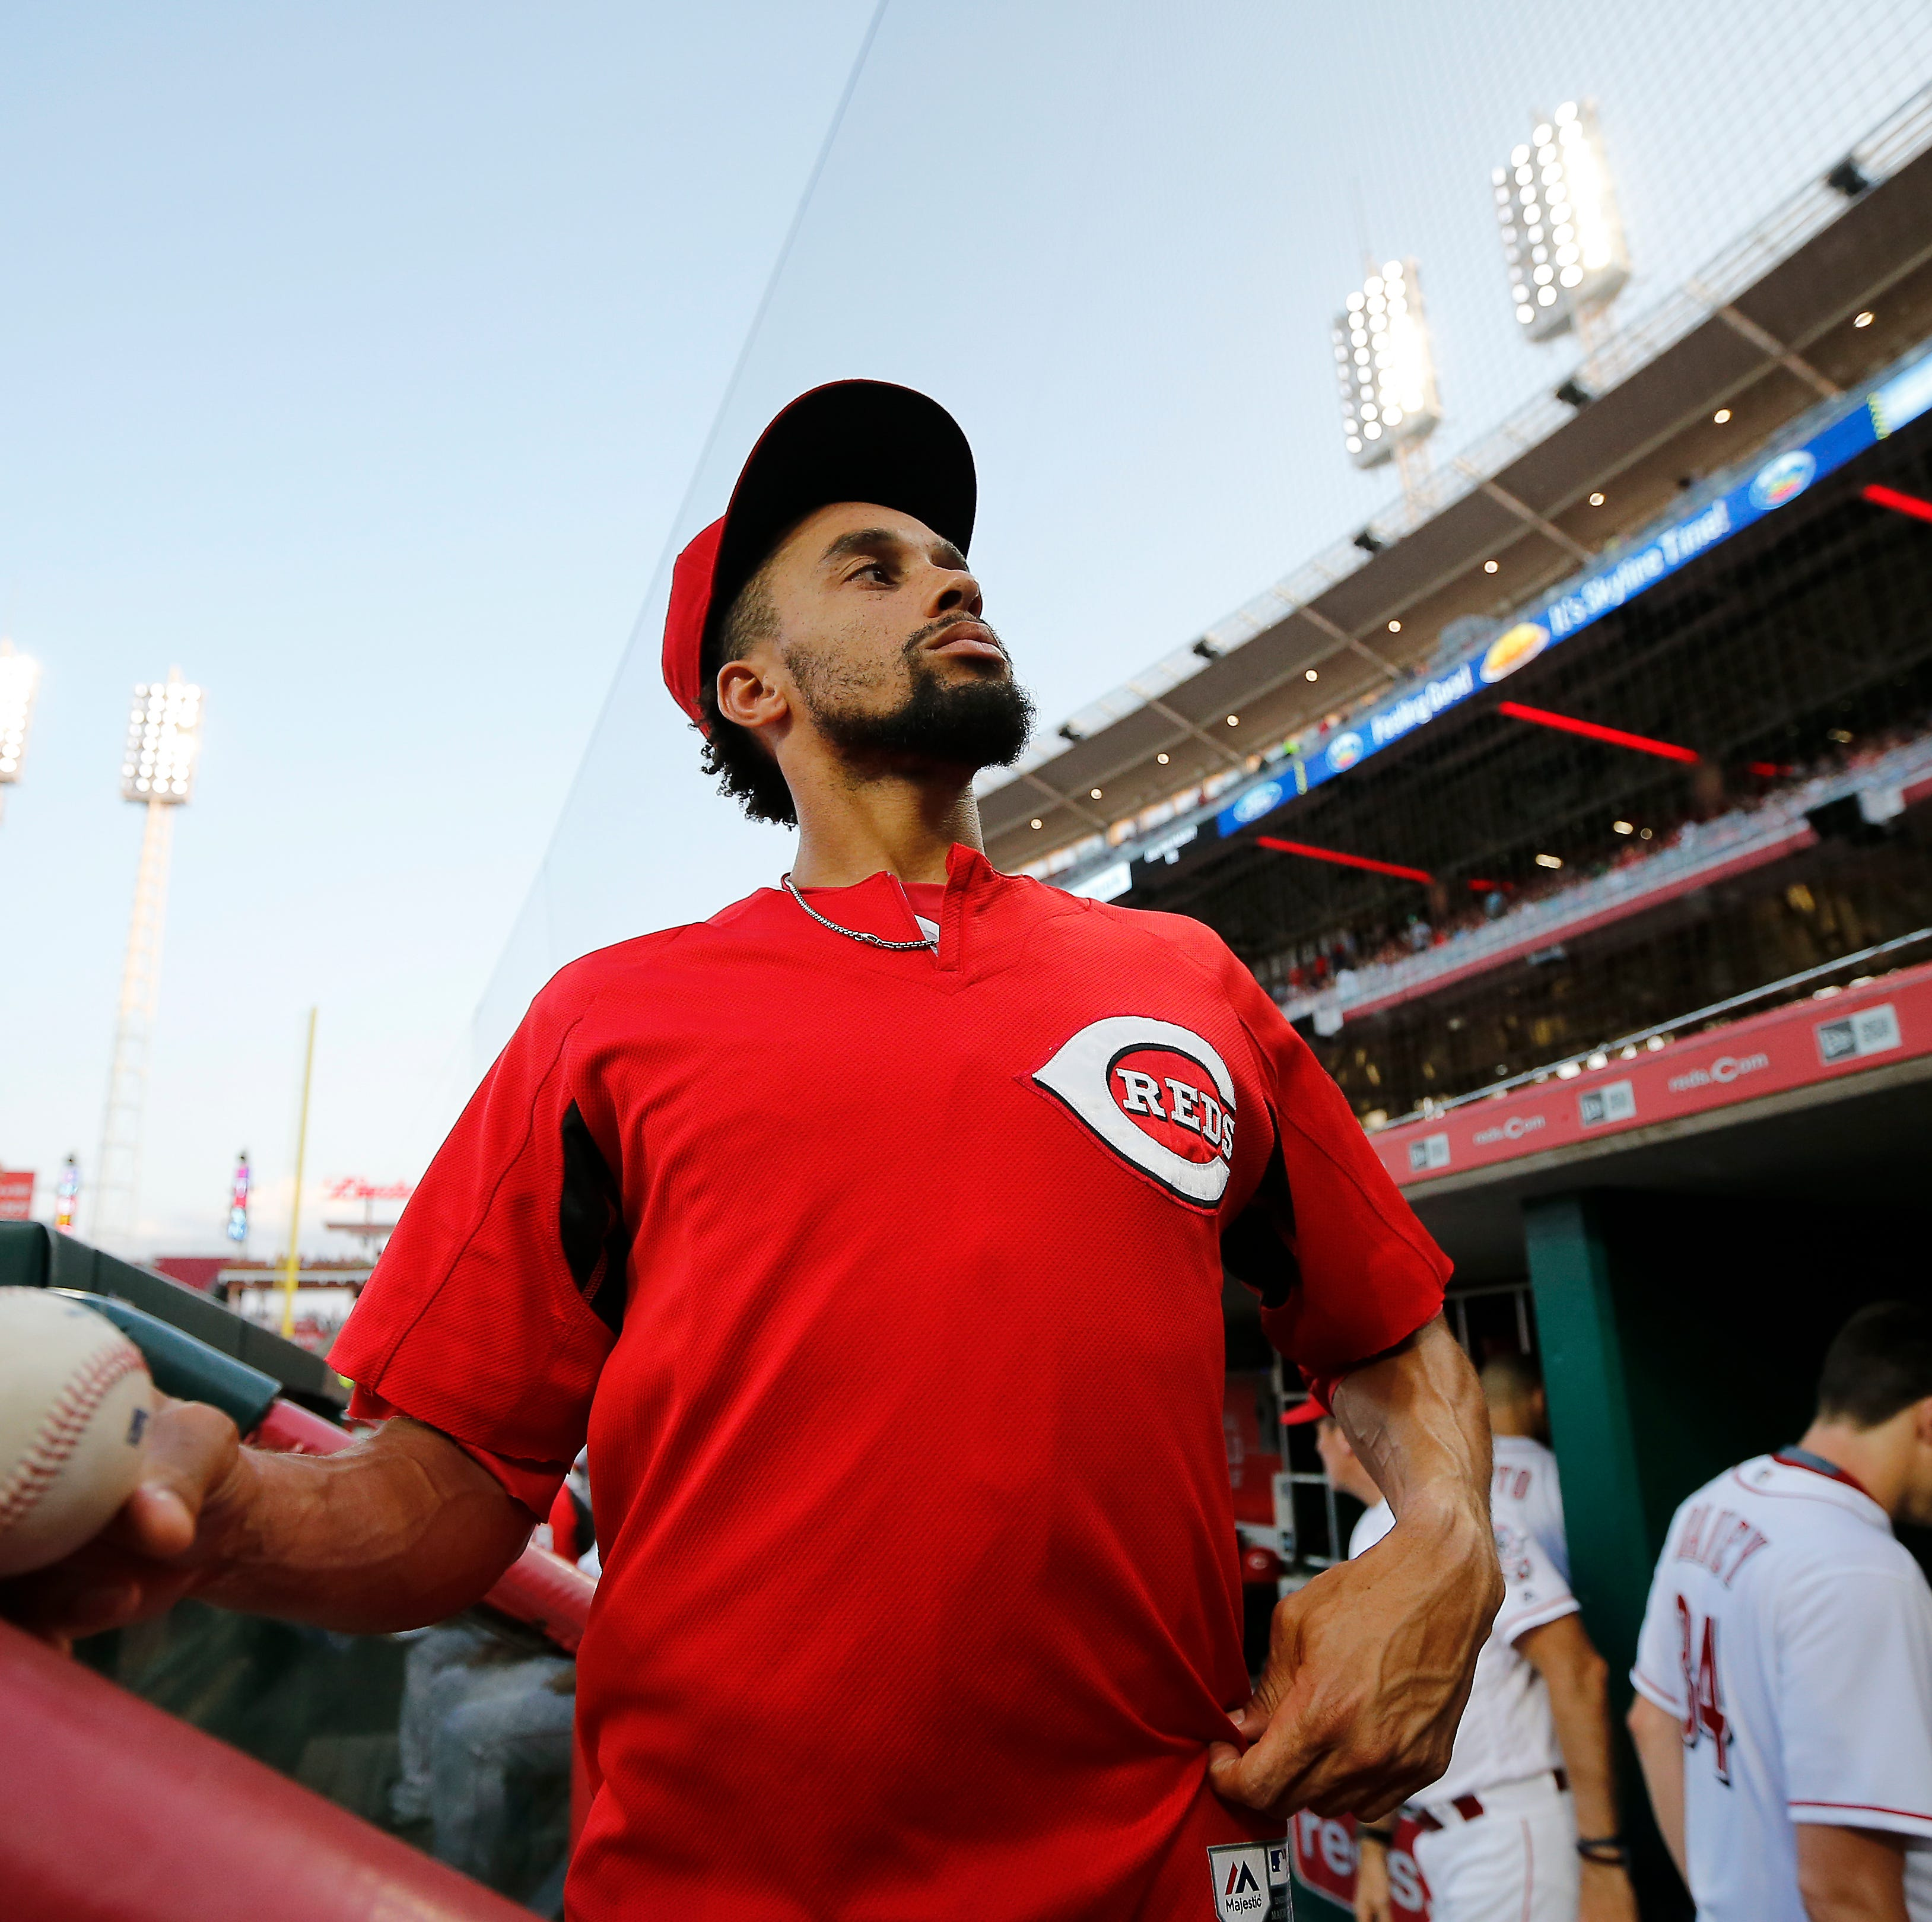 Reds outfielder Billy Hamilton makes catch, climbs wall, hands ball to fan